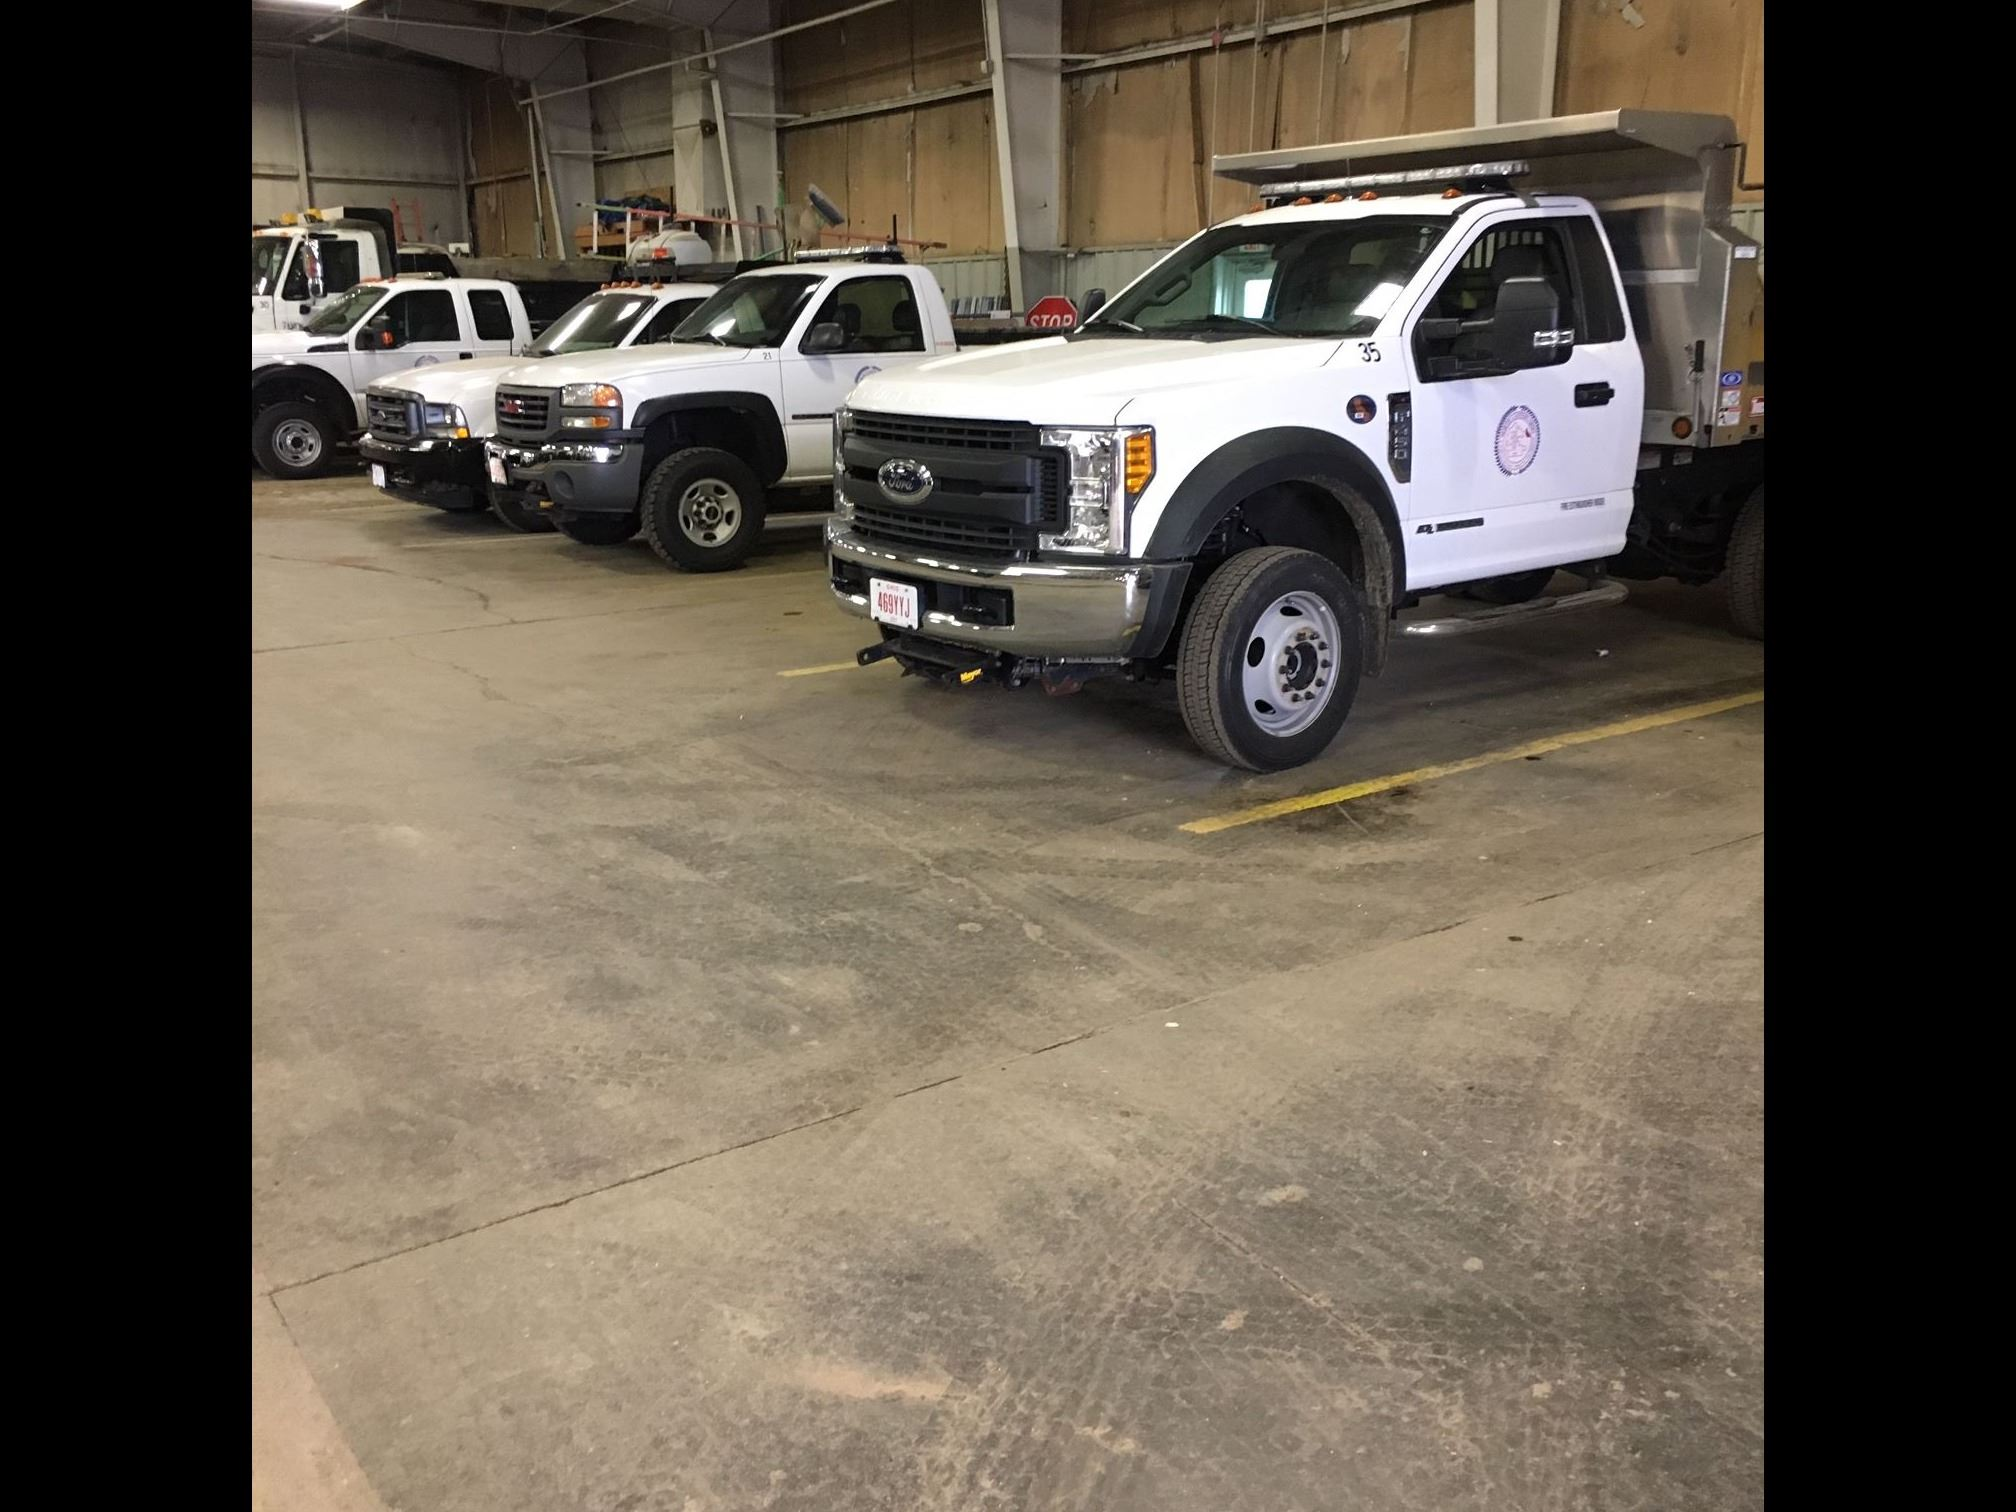 Street Department Service Vehicles